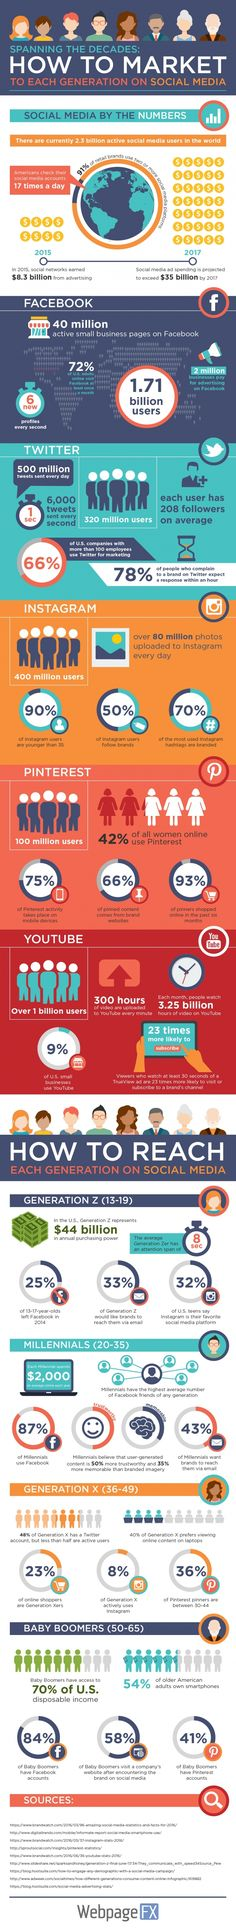 Spanning the Decades: How to market to each Generation on Social Media